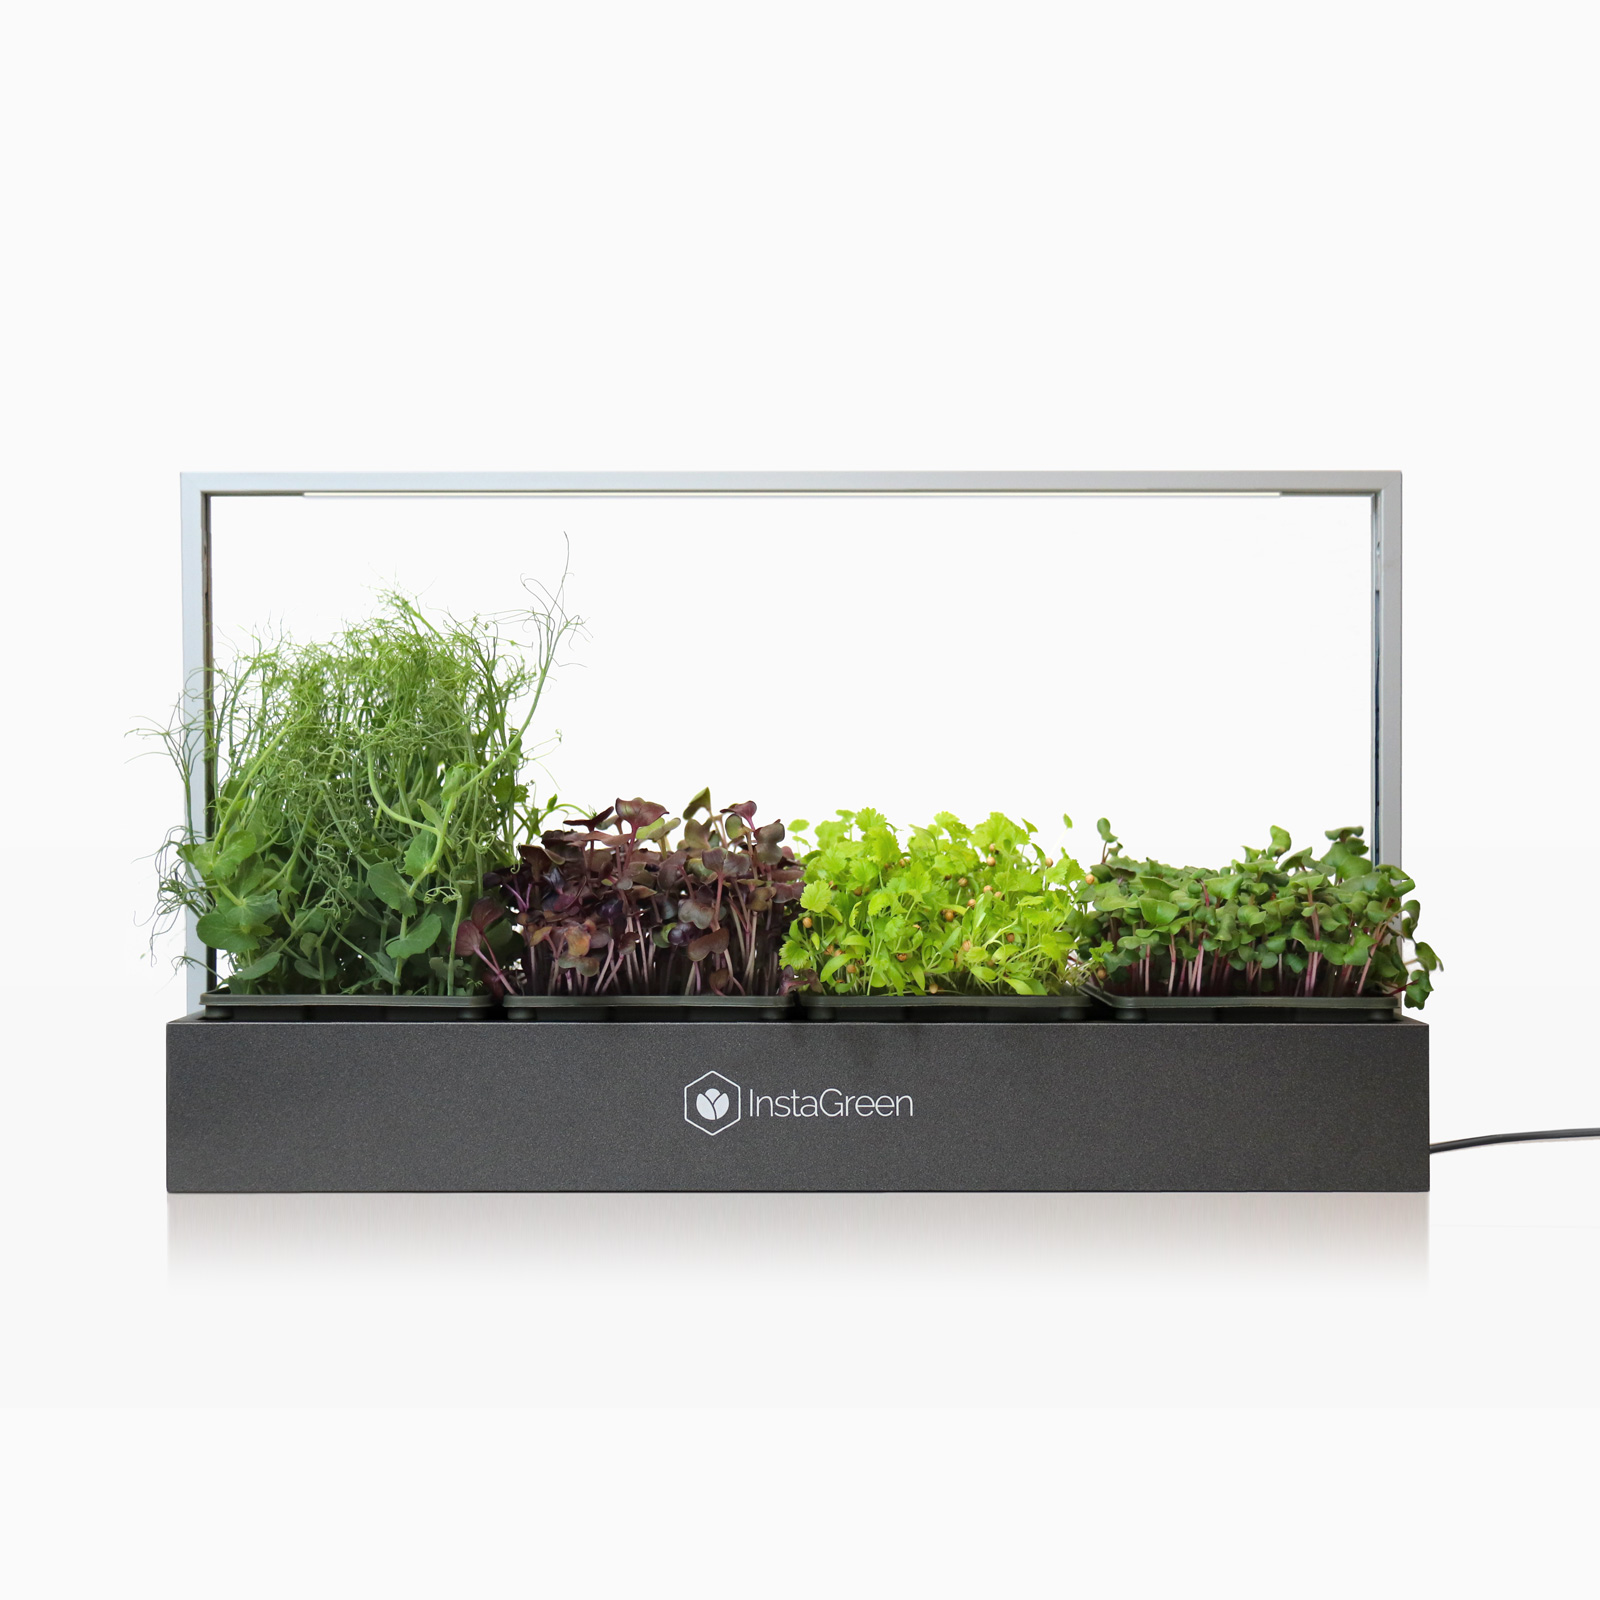 InstaGreen microgreen LED display dark aluminium filled with healthy microgreens